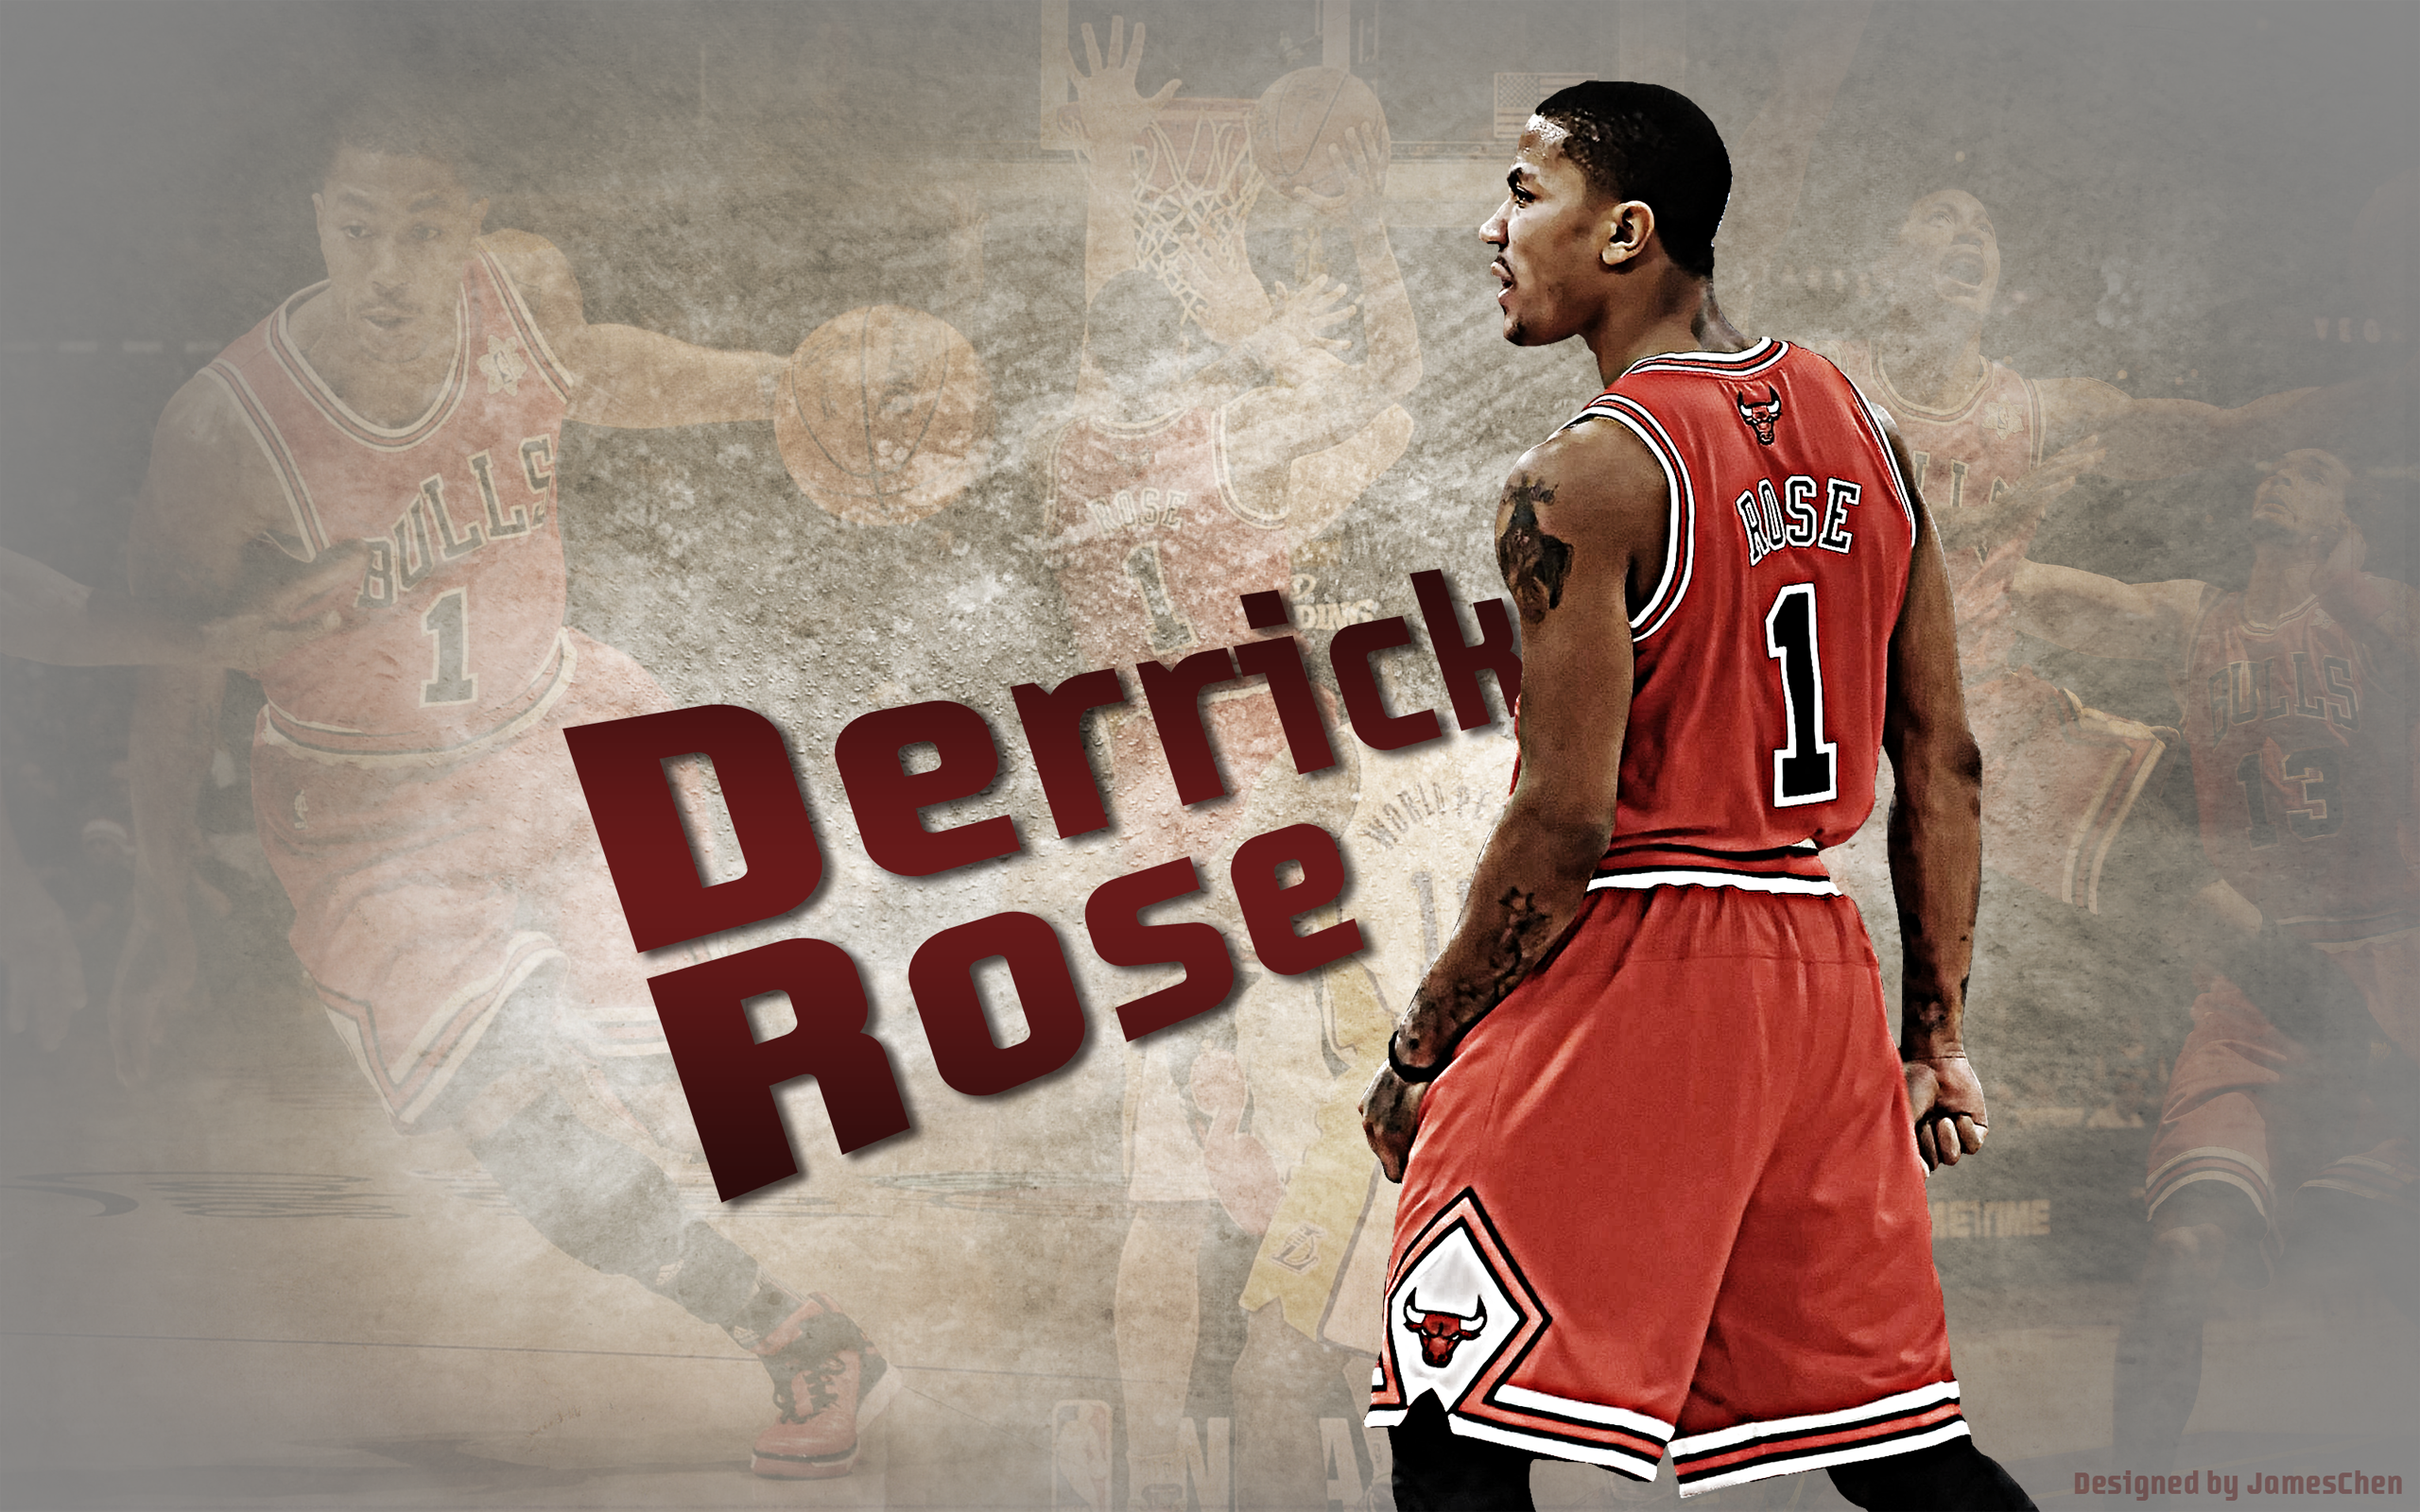 Derrick rose wallpapers high resolution and quality download - Derrick rose cool wallpaper ...